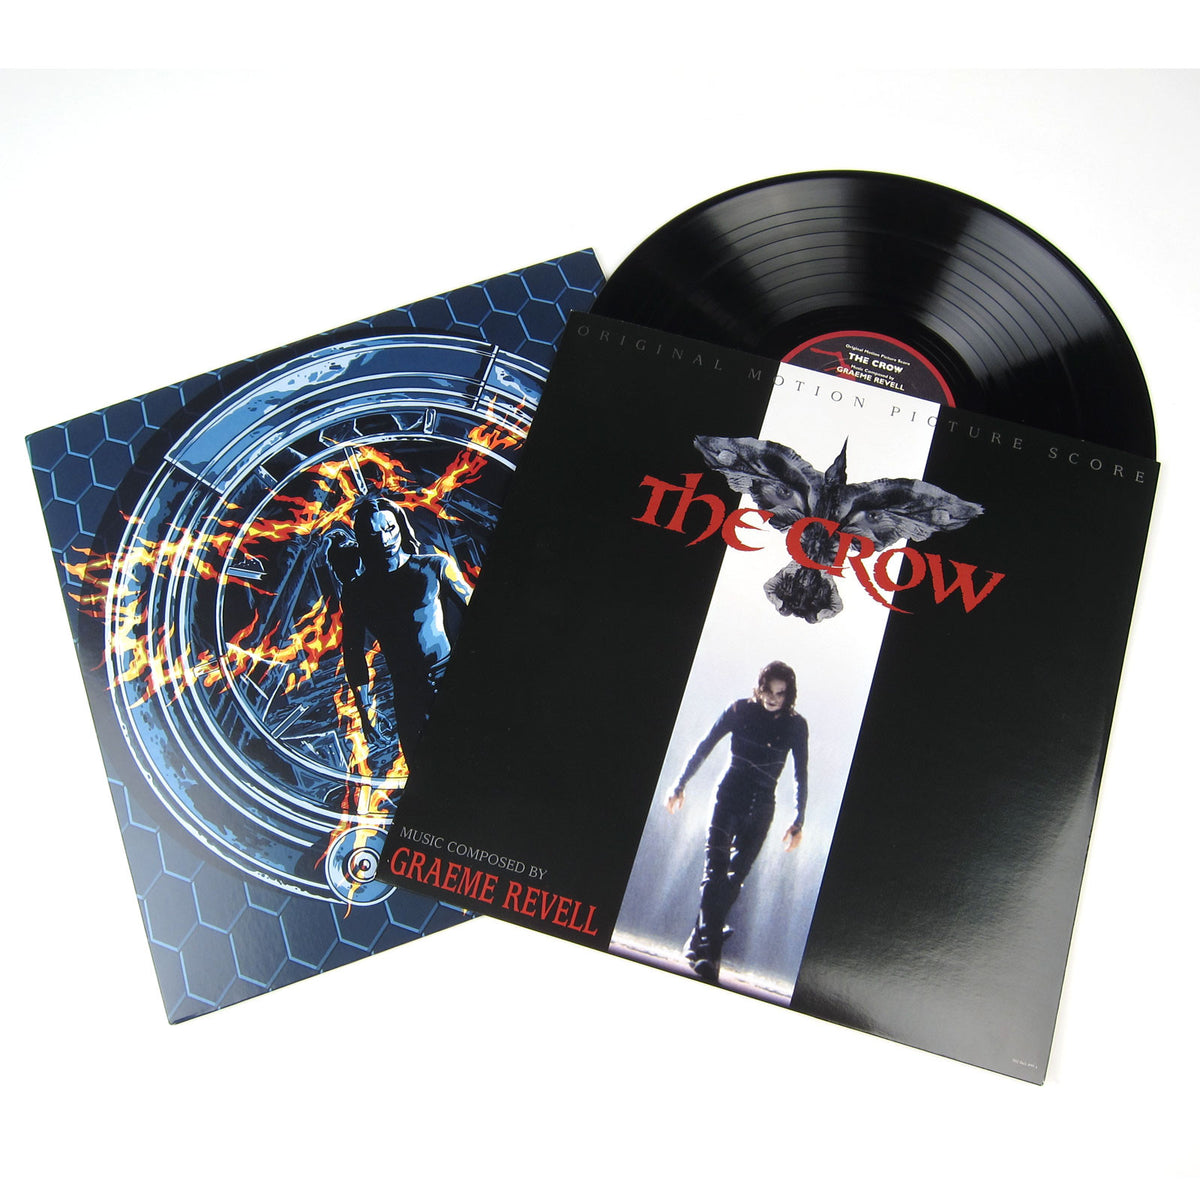 Graeme Revell: The Crow Original Score Vinyl LP